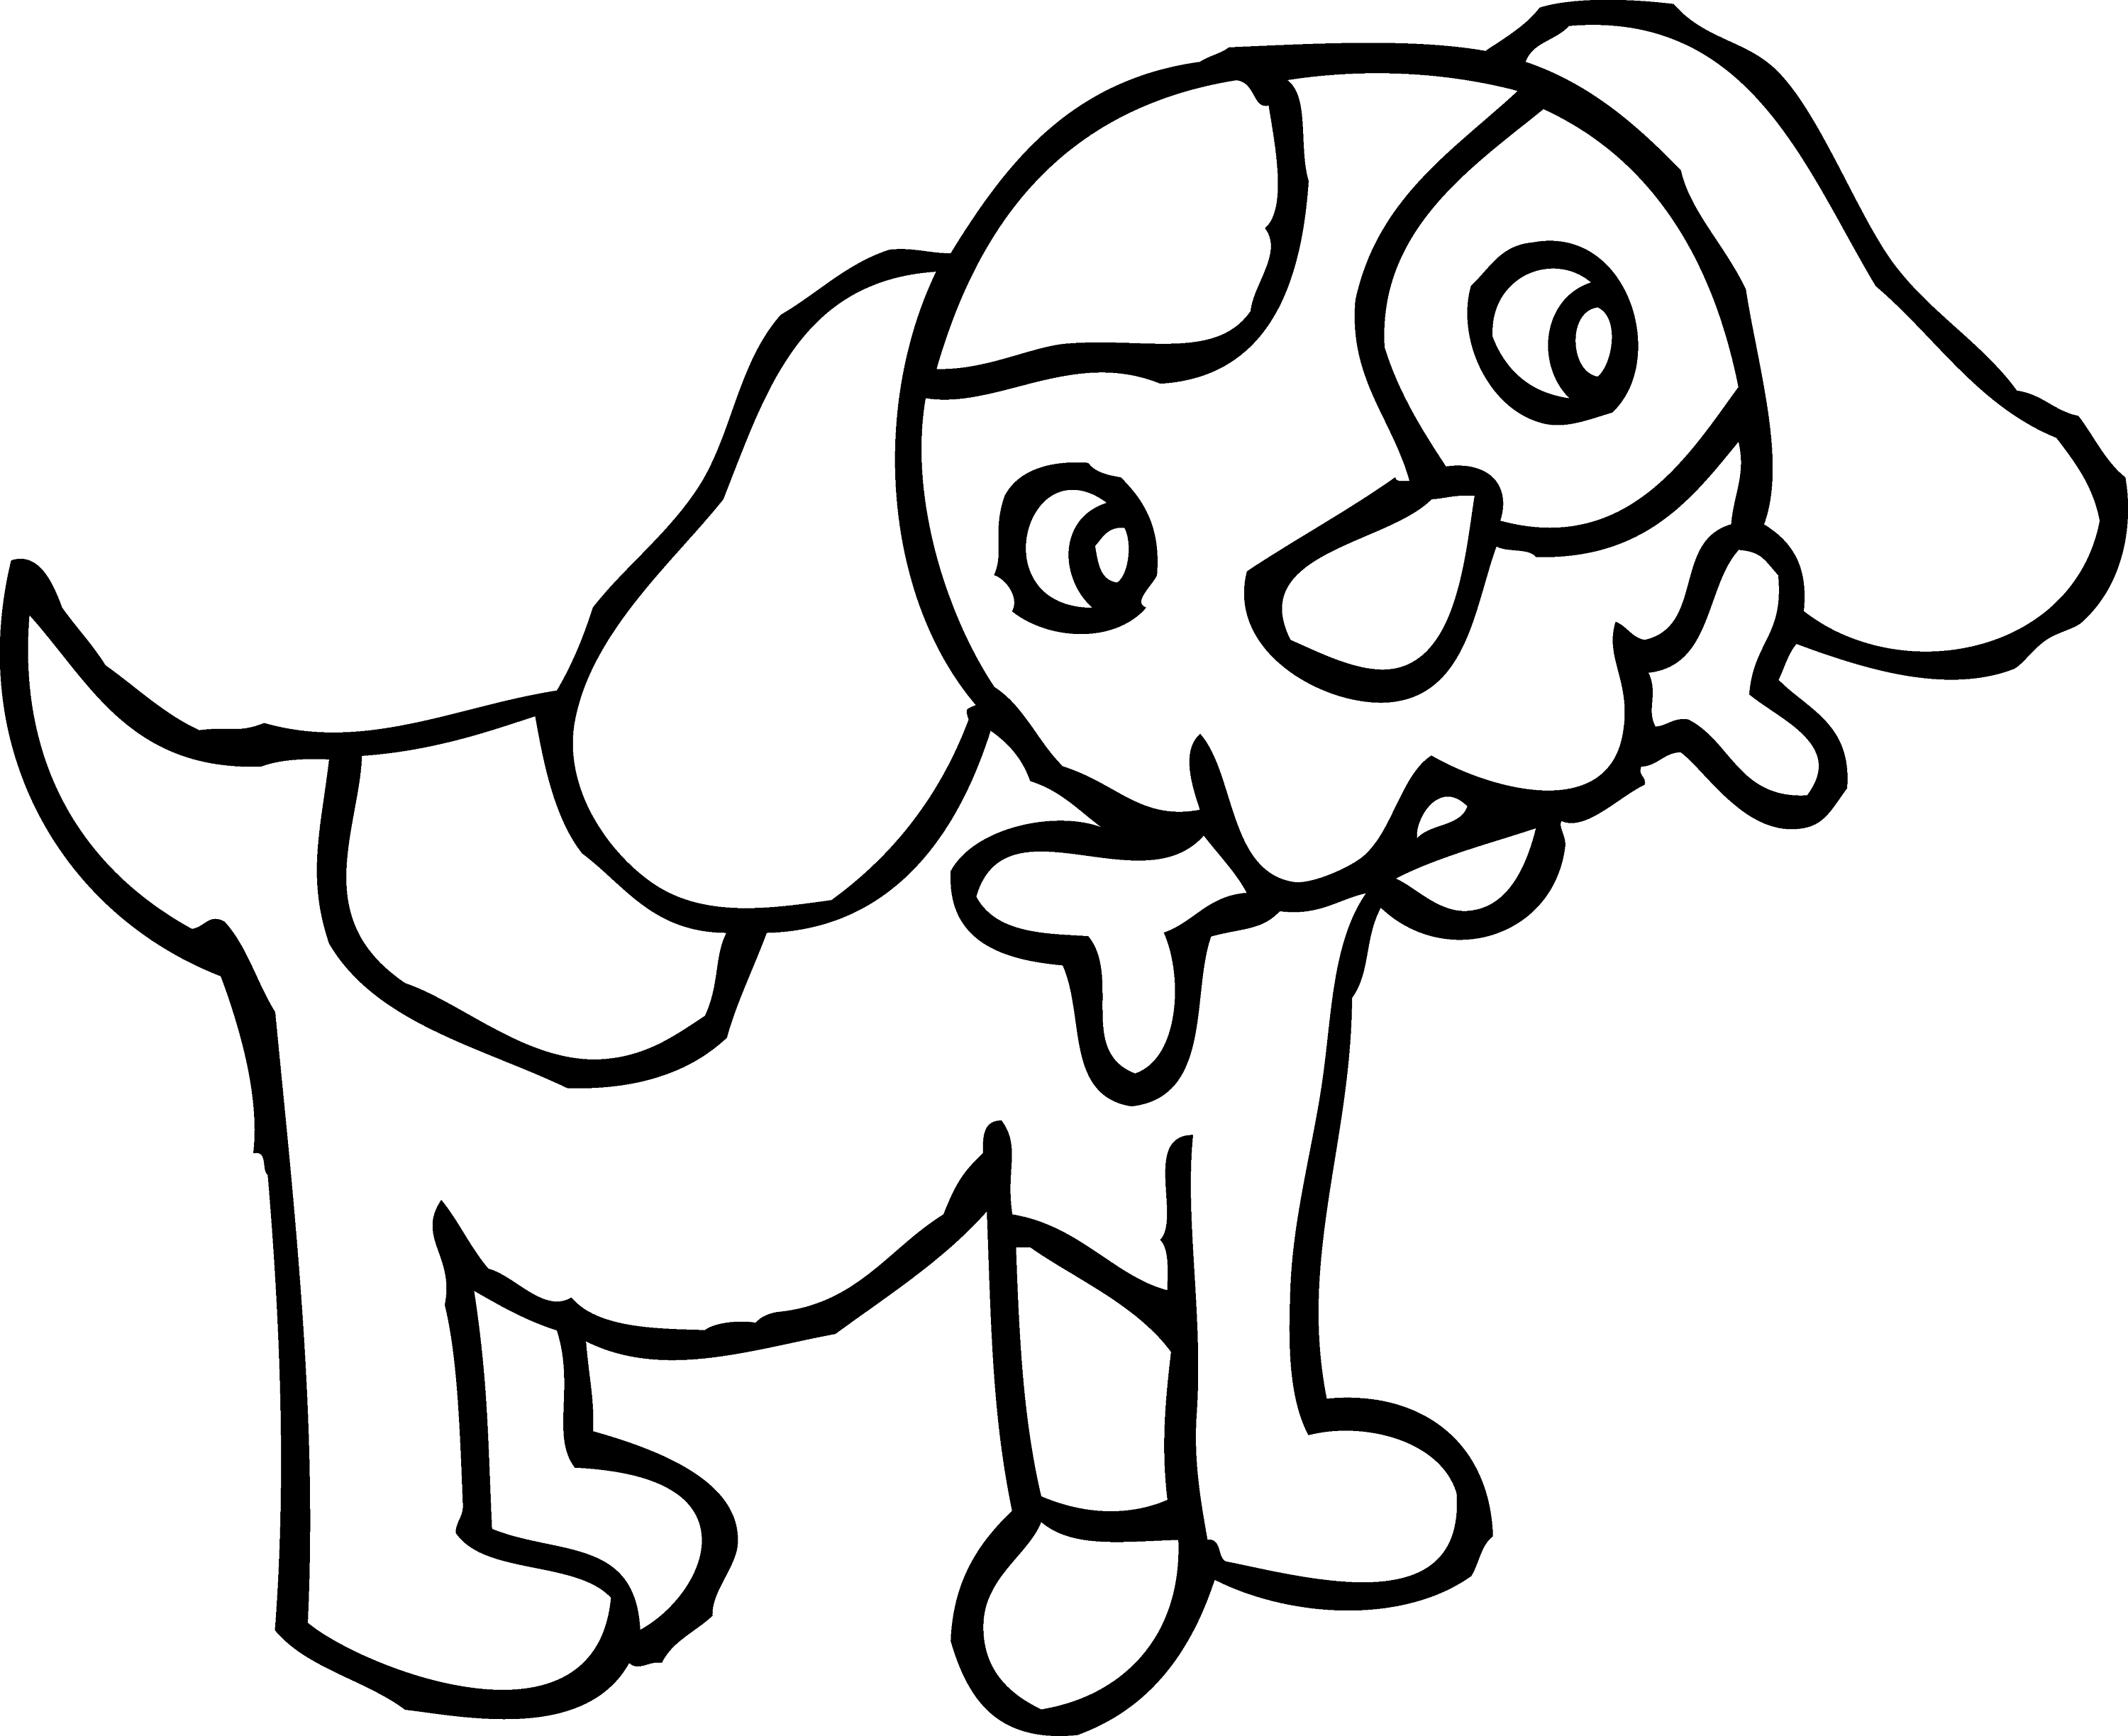 small dog coloring pages 50 free cute puppy coloring pages updated october 2020 small coloring dog pages